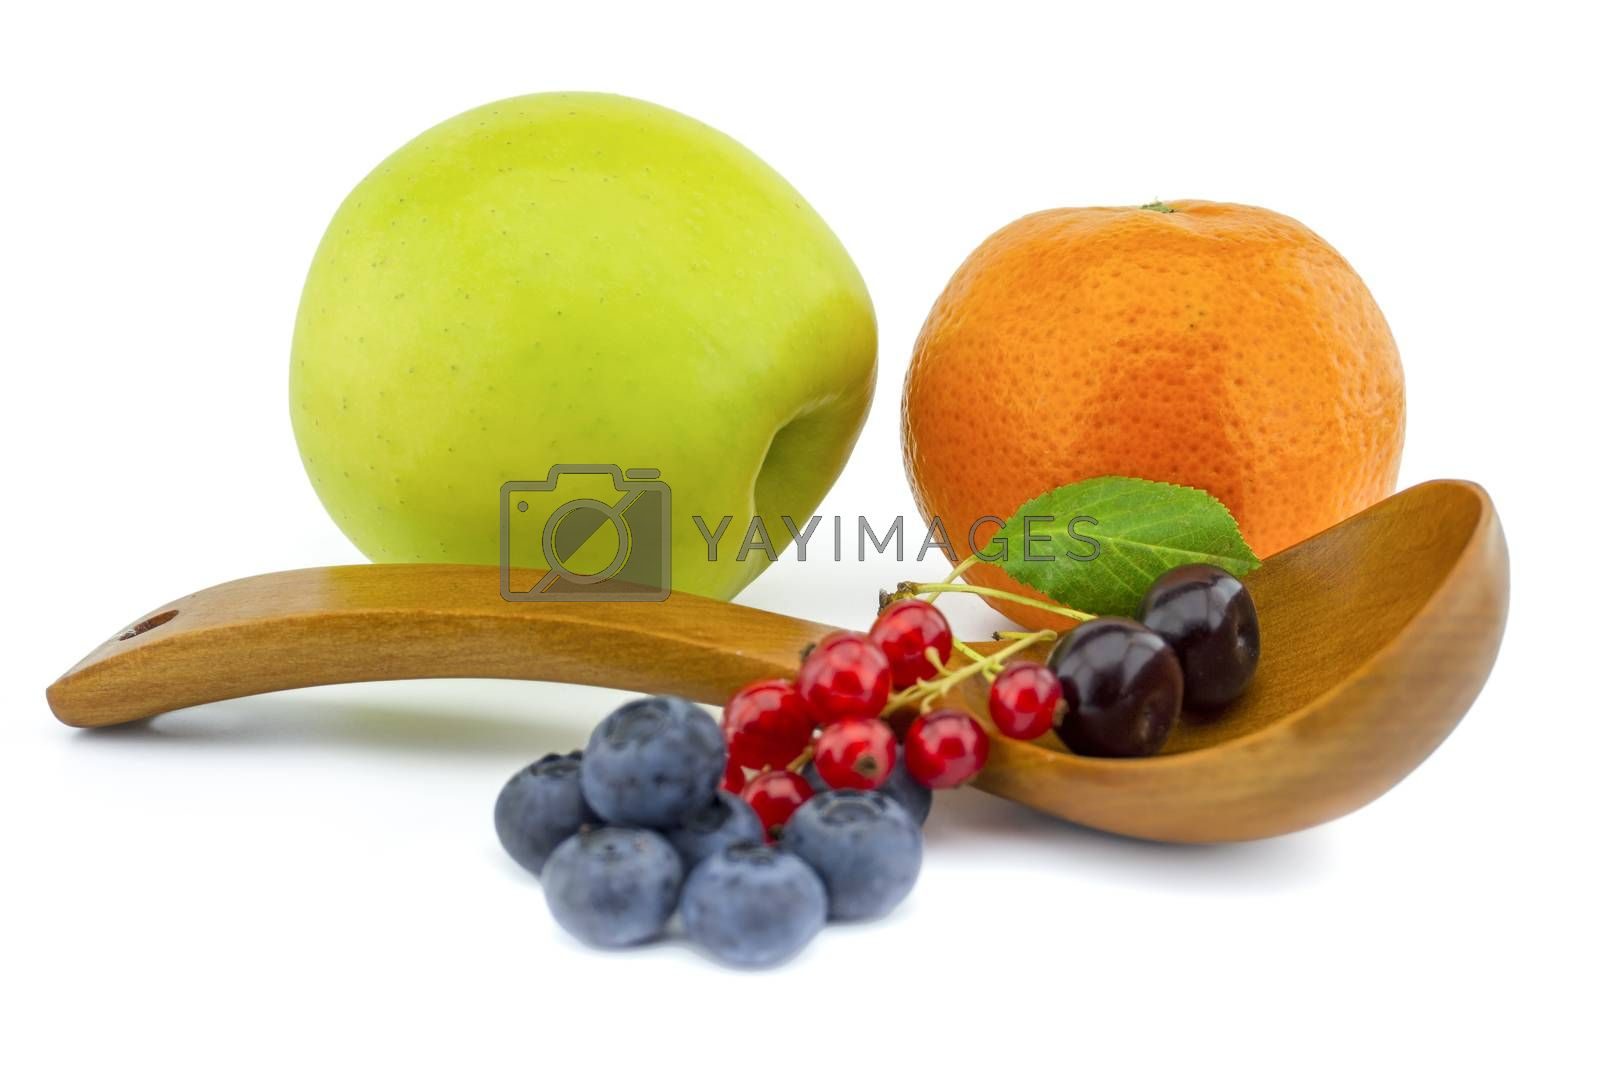 Fresh seasonal fruit still life with assorted berries including blueberries, cherries and red currants on wooden spoons with apple and orange on a white background with copyspace